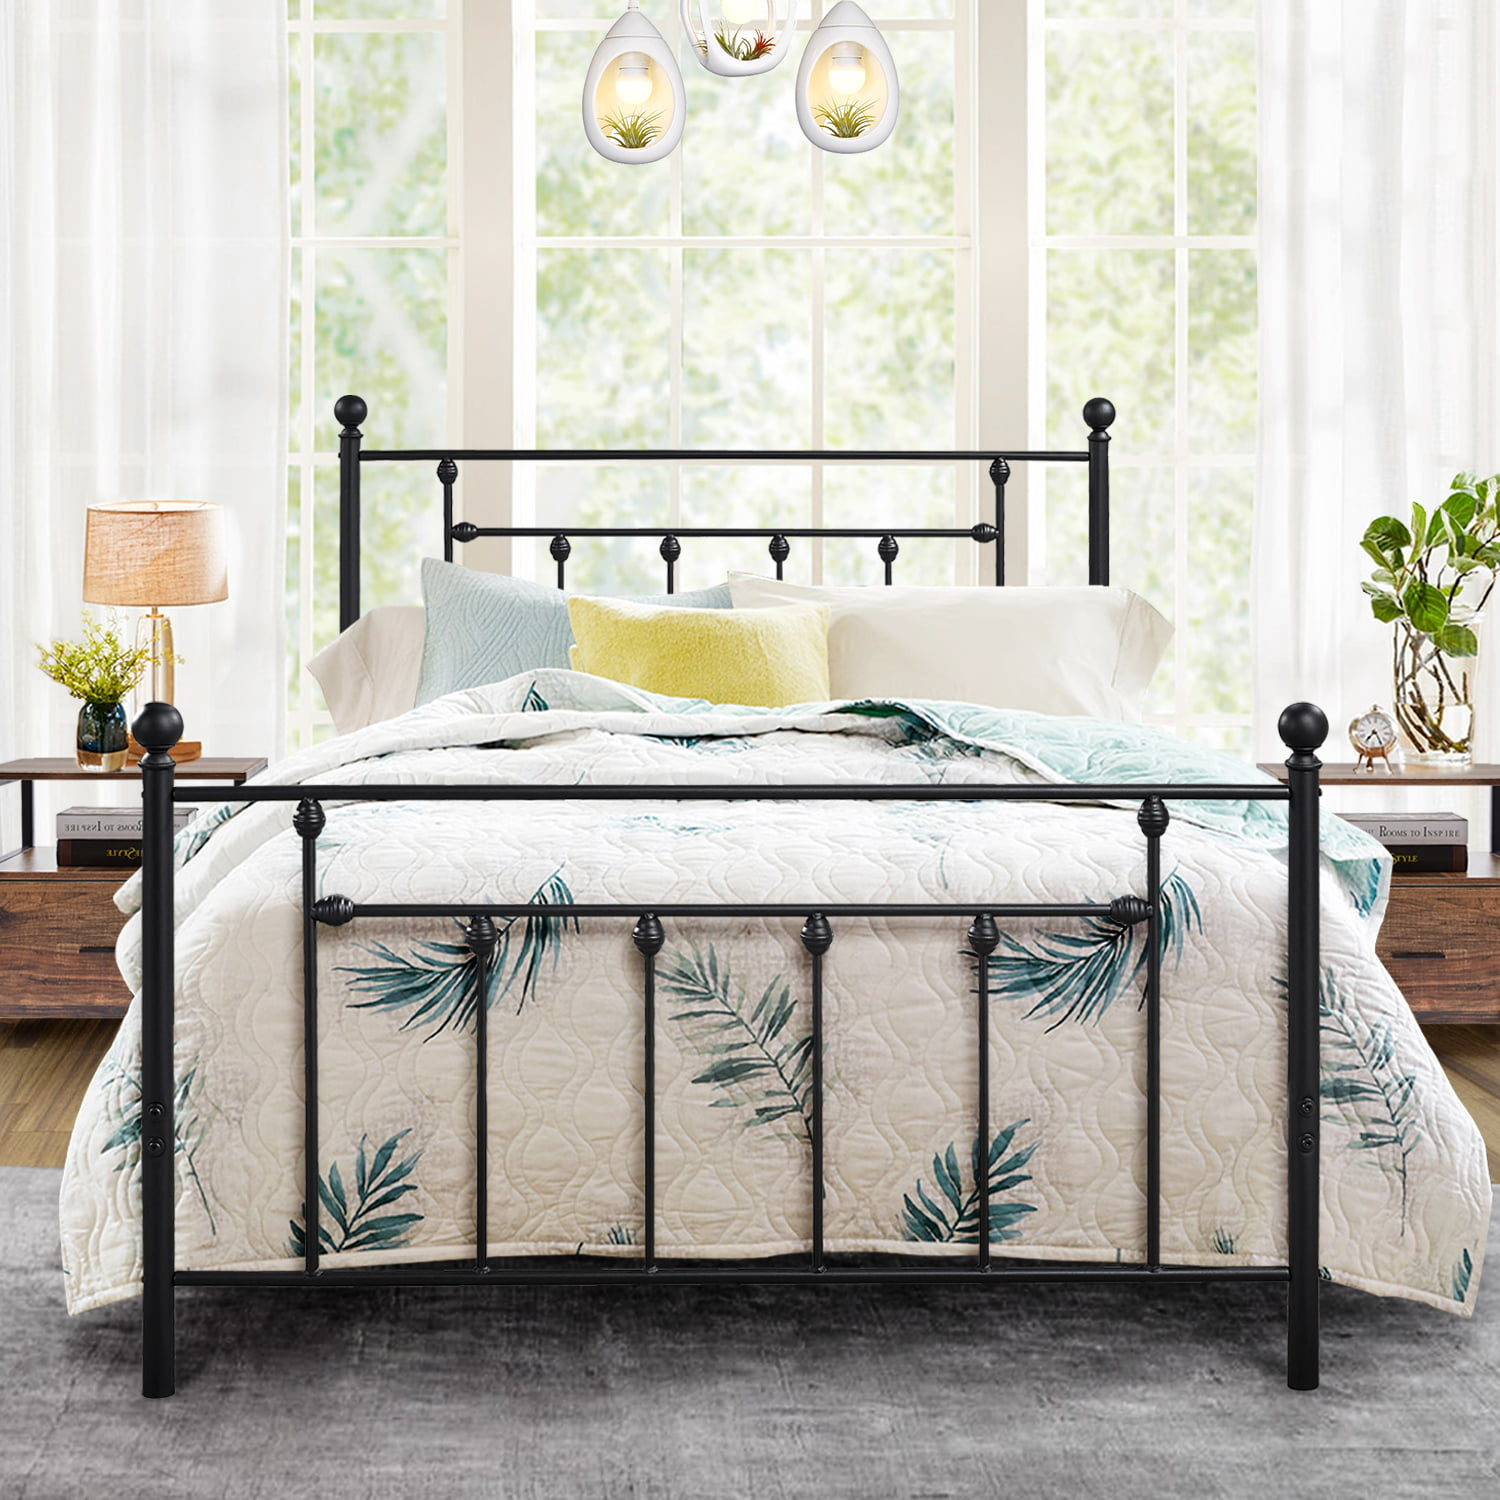 Picture of: Antique Queen Size Bed Frame Platform Bed With Victorian Iron Headboard Slats Support Walmart Com Walmart Com